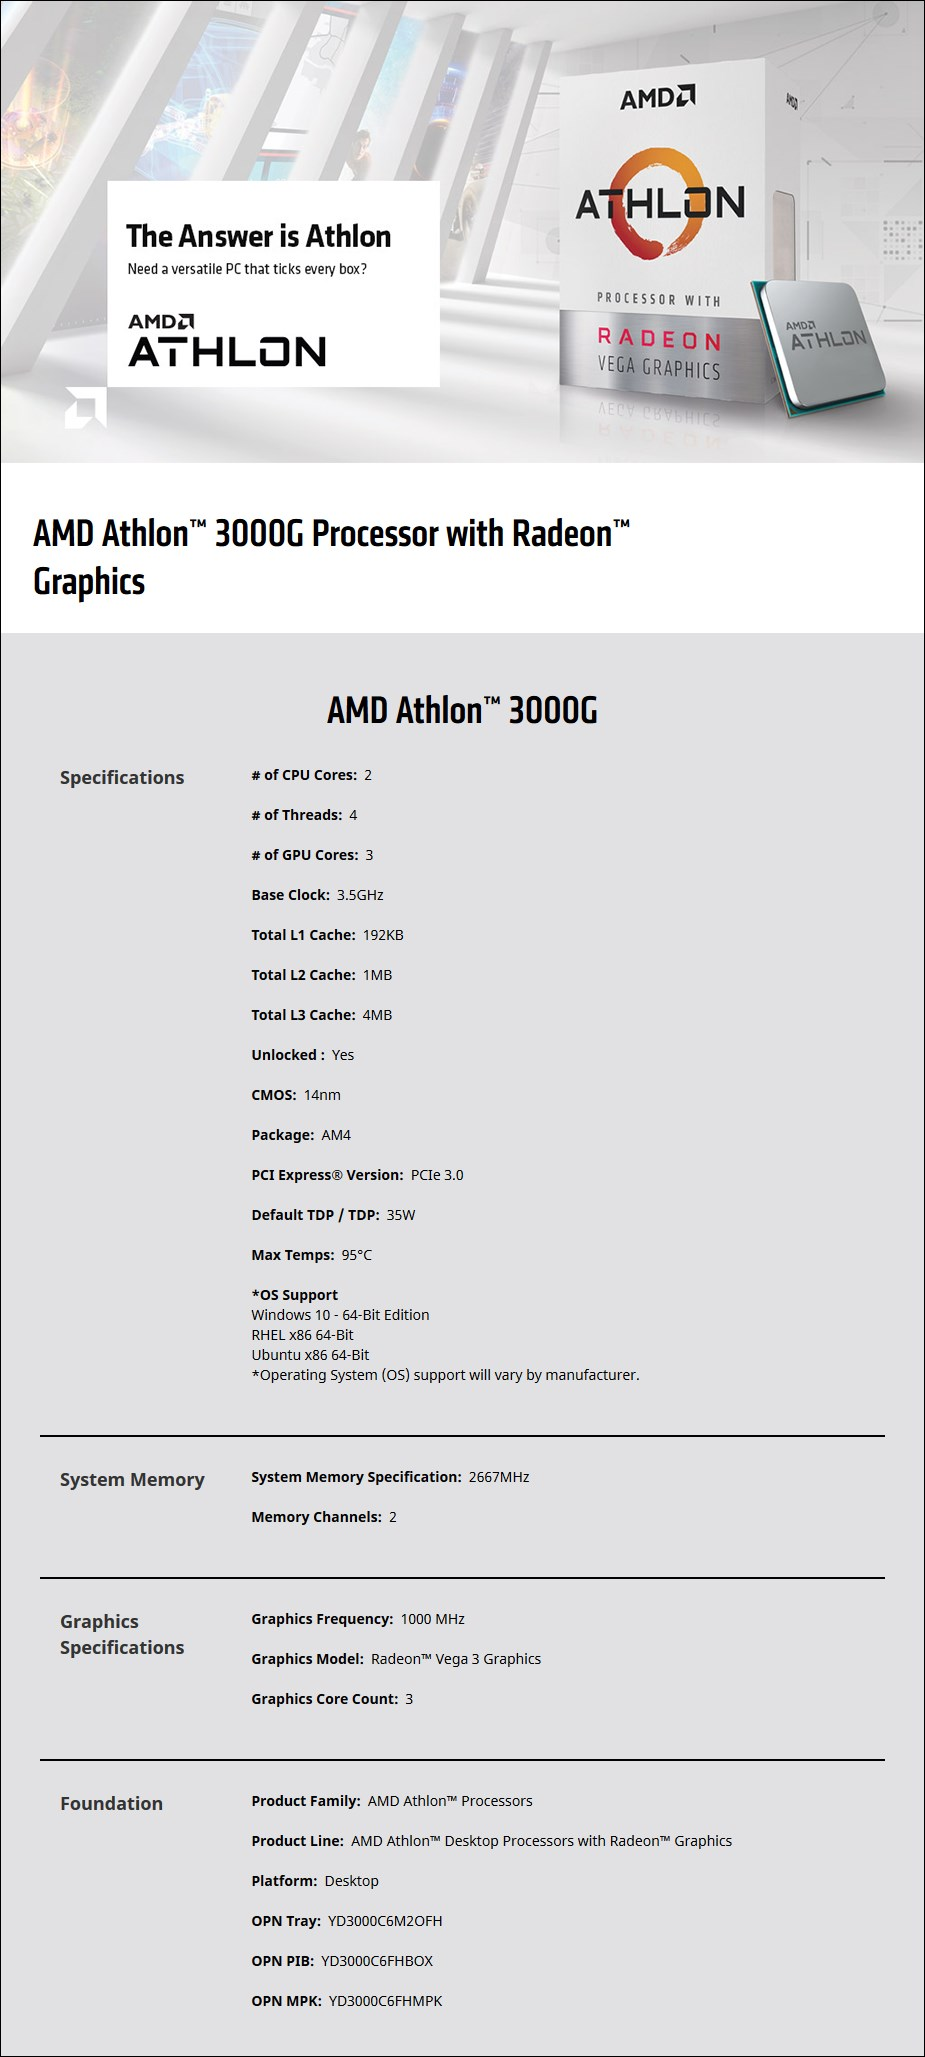 AMD Athlon 3000G 2-Core AM4 3.5 GHz CPU Processor with Radeon Vega 3 Graphics - Overview 1